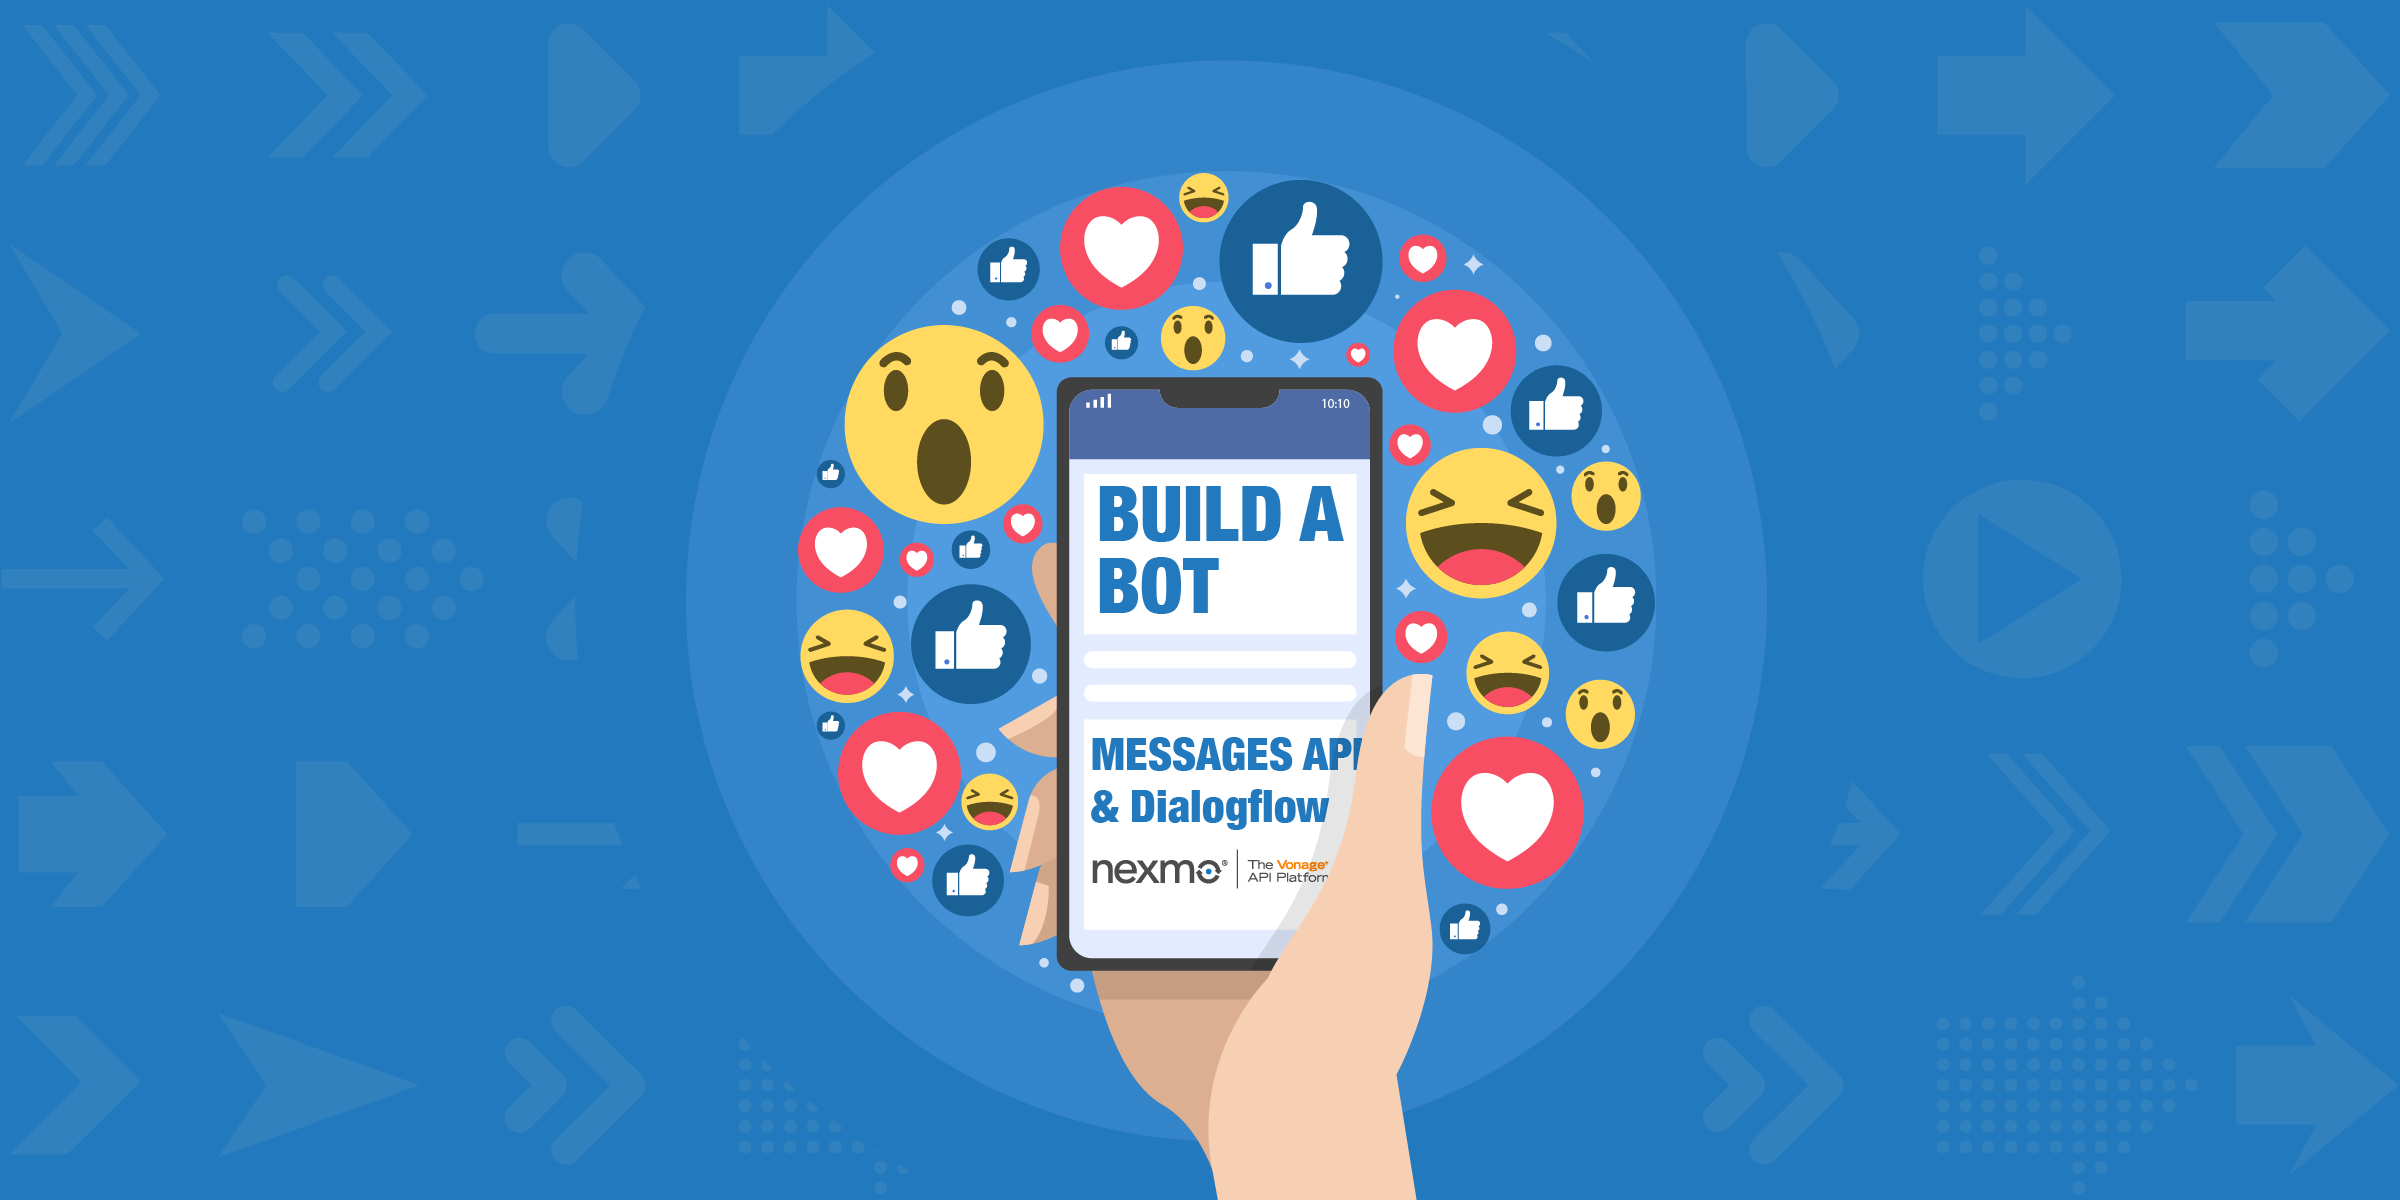 Build a Facebook Messenger Bot with Messages API and Dialogflow